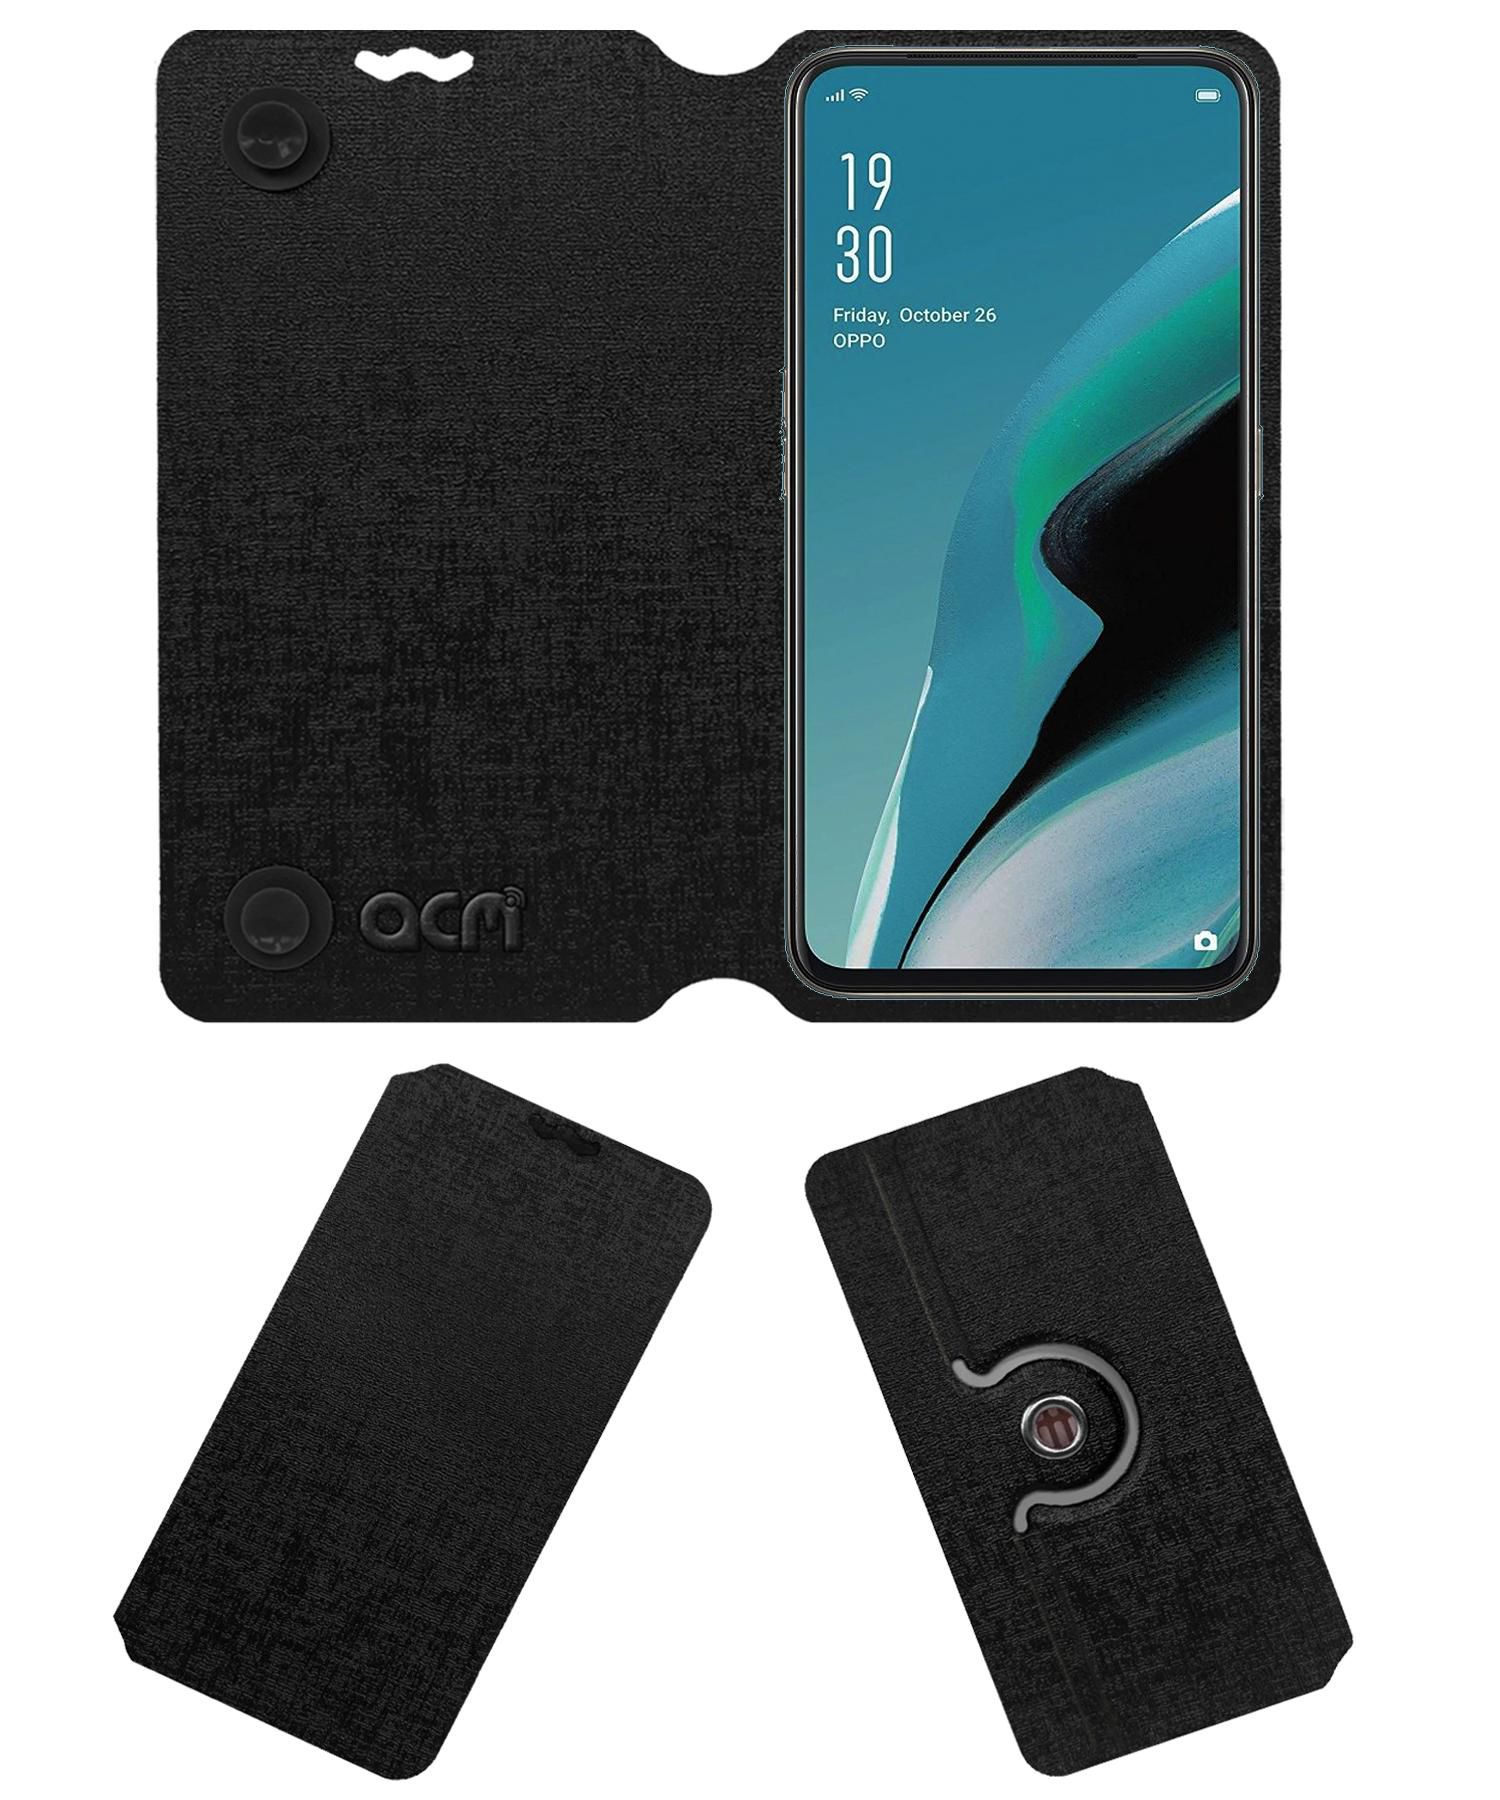 Oppo Reno 2F Flip Cover by ACM - Black Dual Side Stand